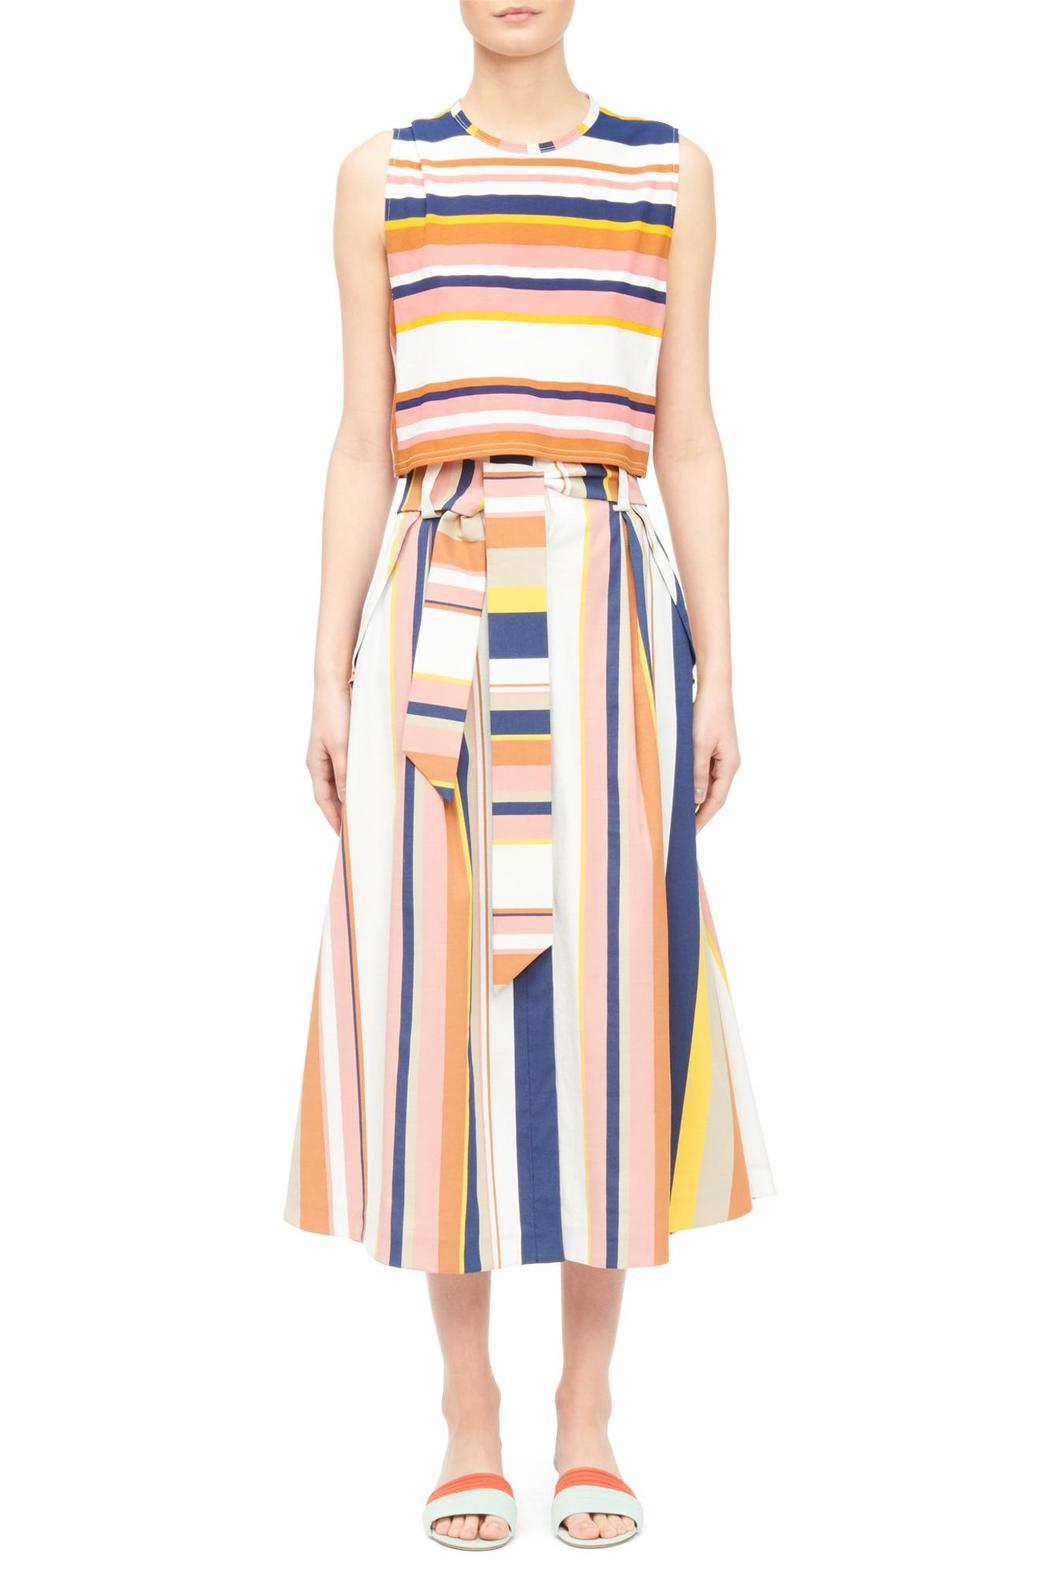 Tanya Taylor Striped Crop Top - Front Cropped Image